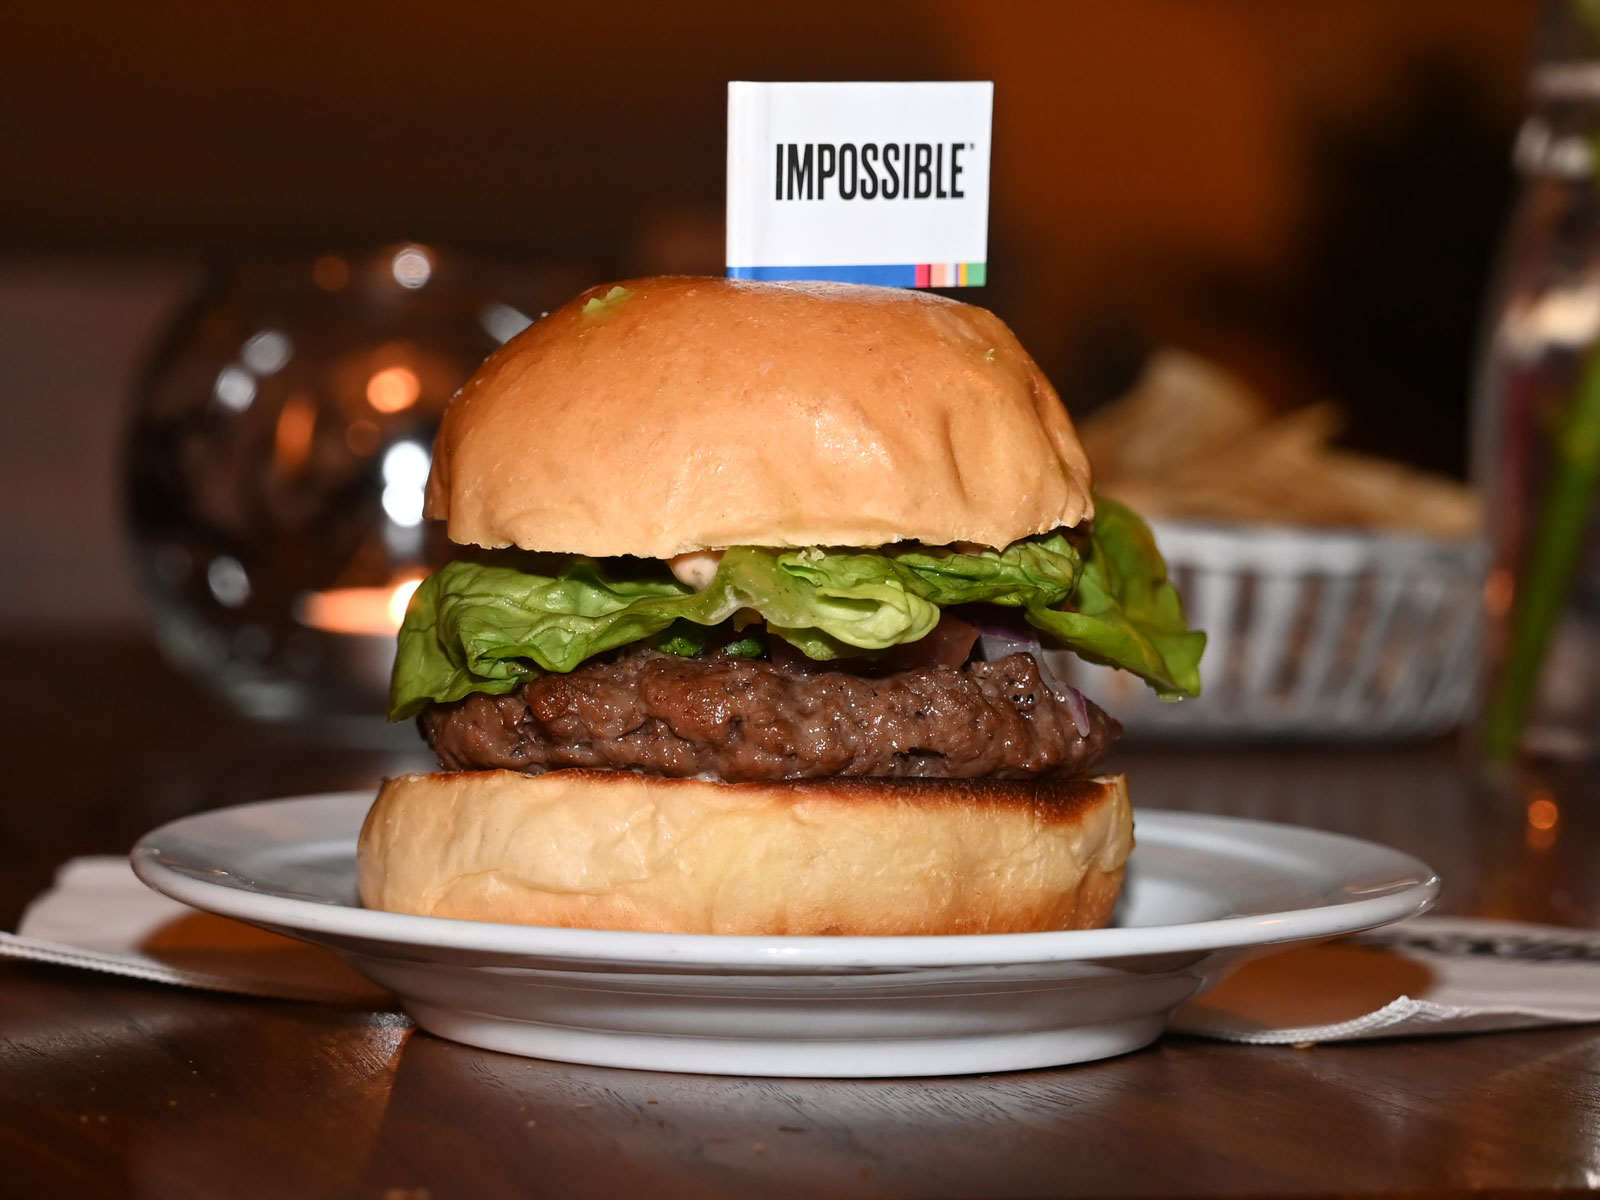 Impossible Burger Shortages Hit Major Chains Like White Castle and Red Robin